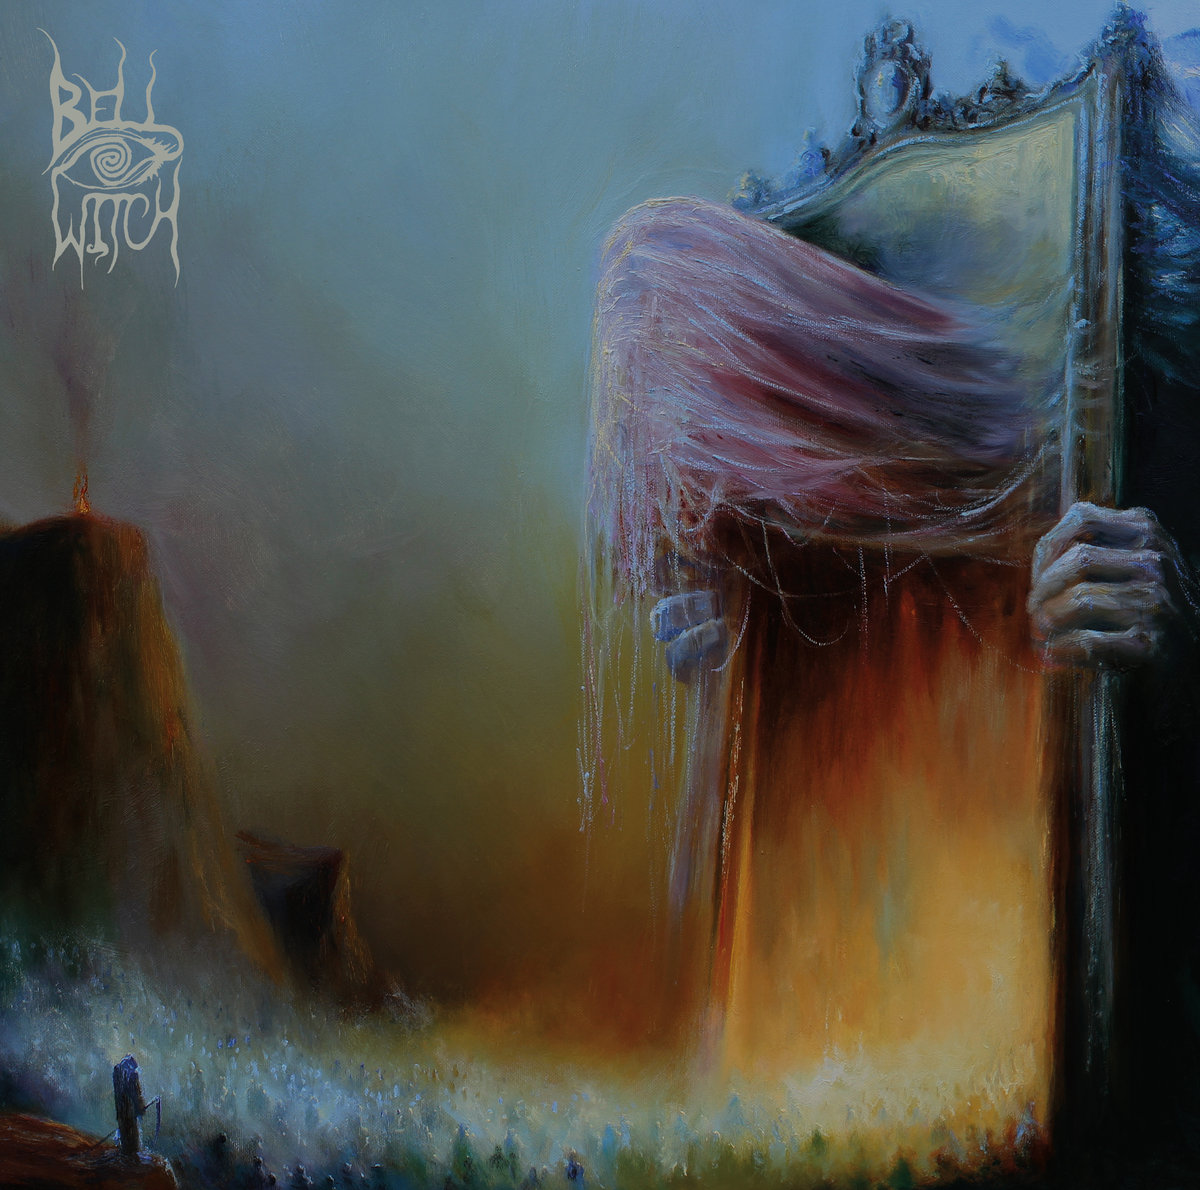 Bell Witch – Mirror Reaper Album Review